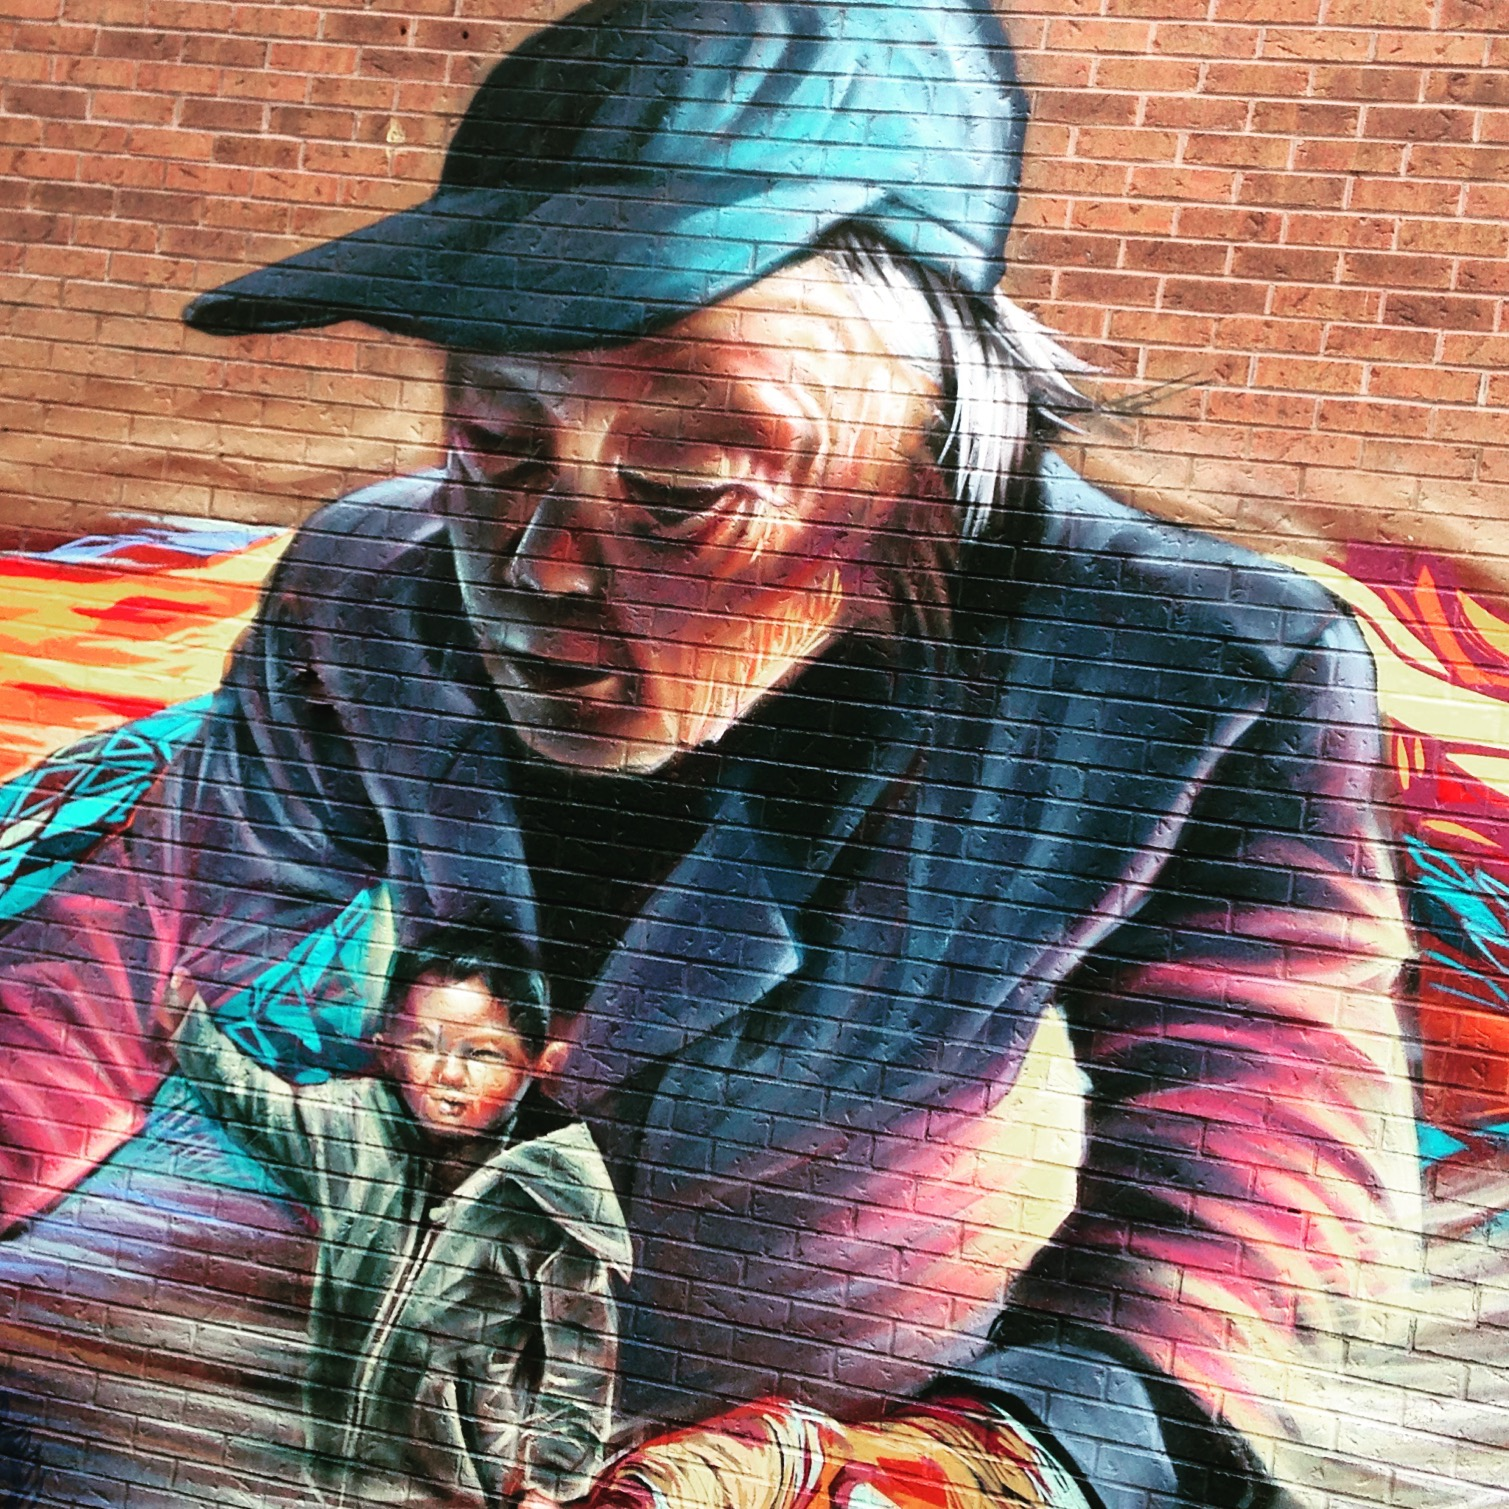 Inca to Inuit - Running for the border, Toronto Street Art